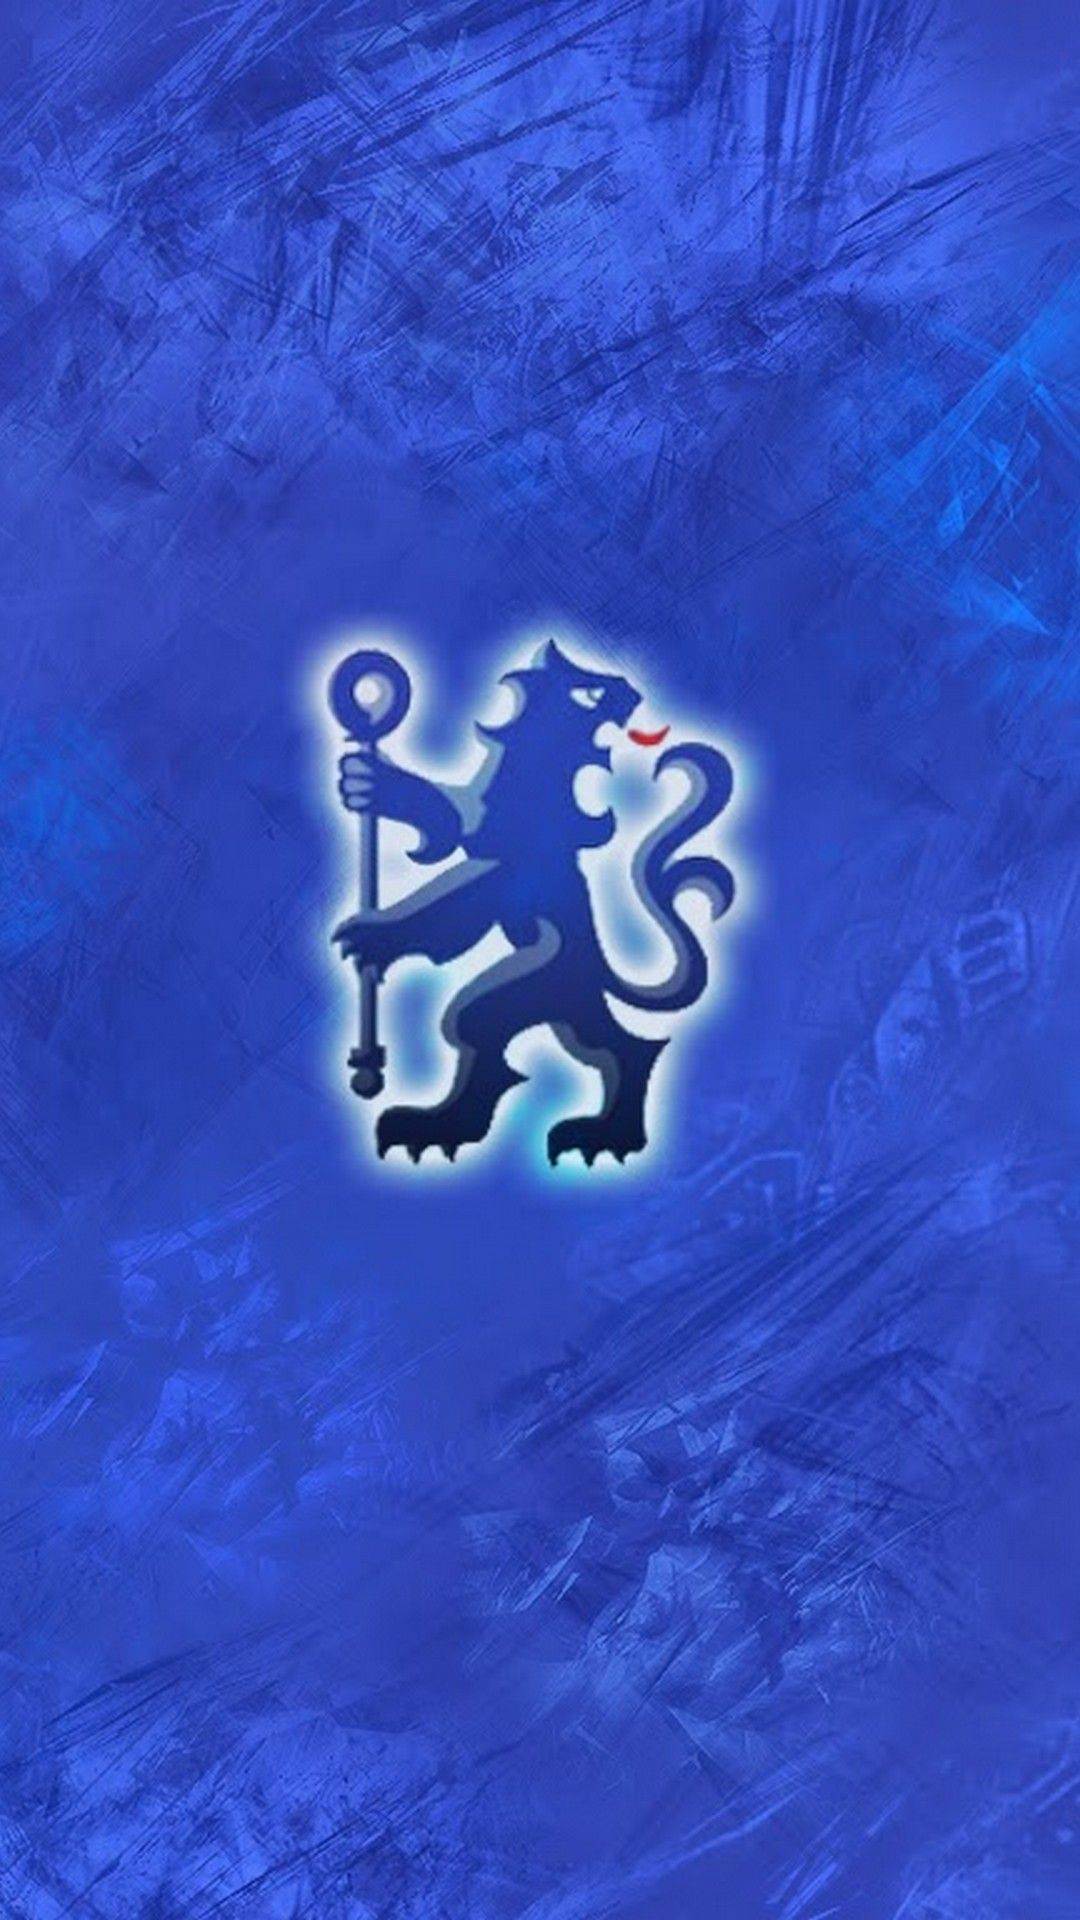 Chelsea Football Wallpaper IPhone HD Dengan Gambar